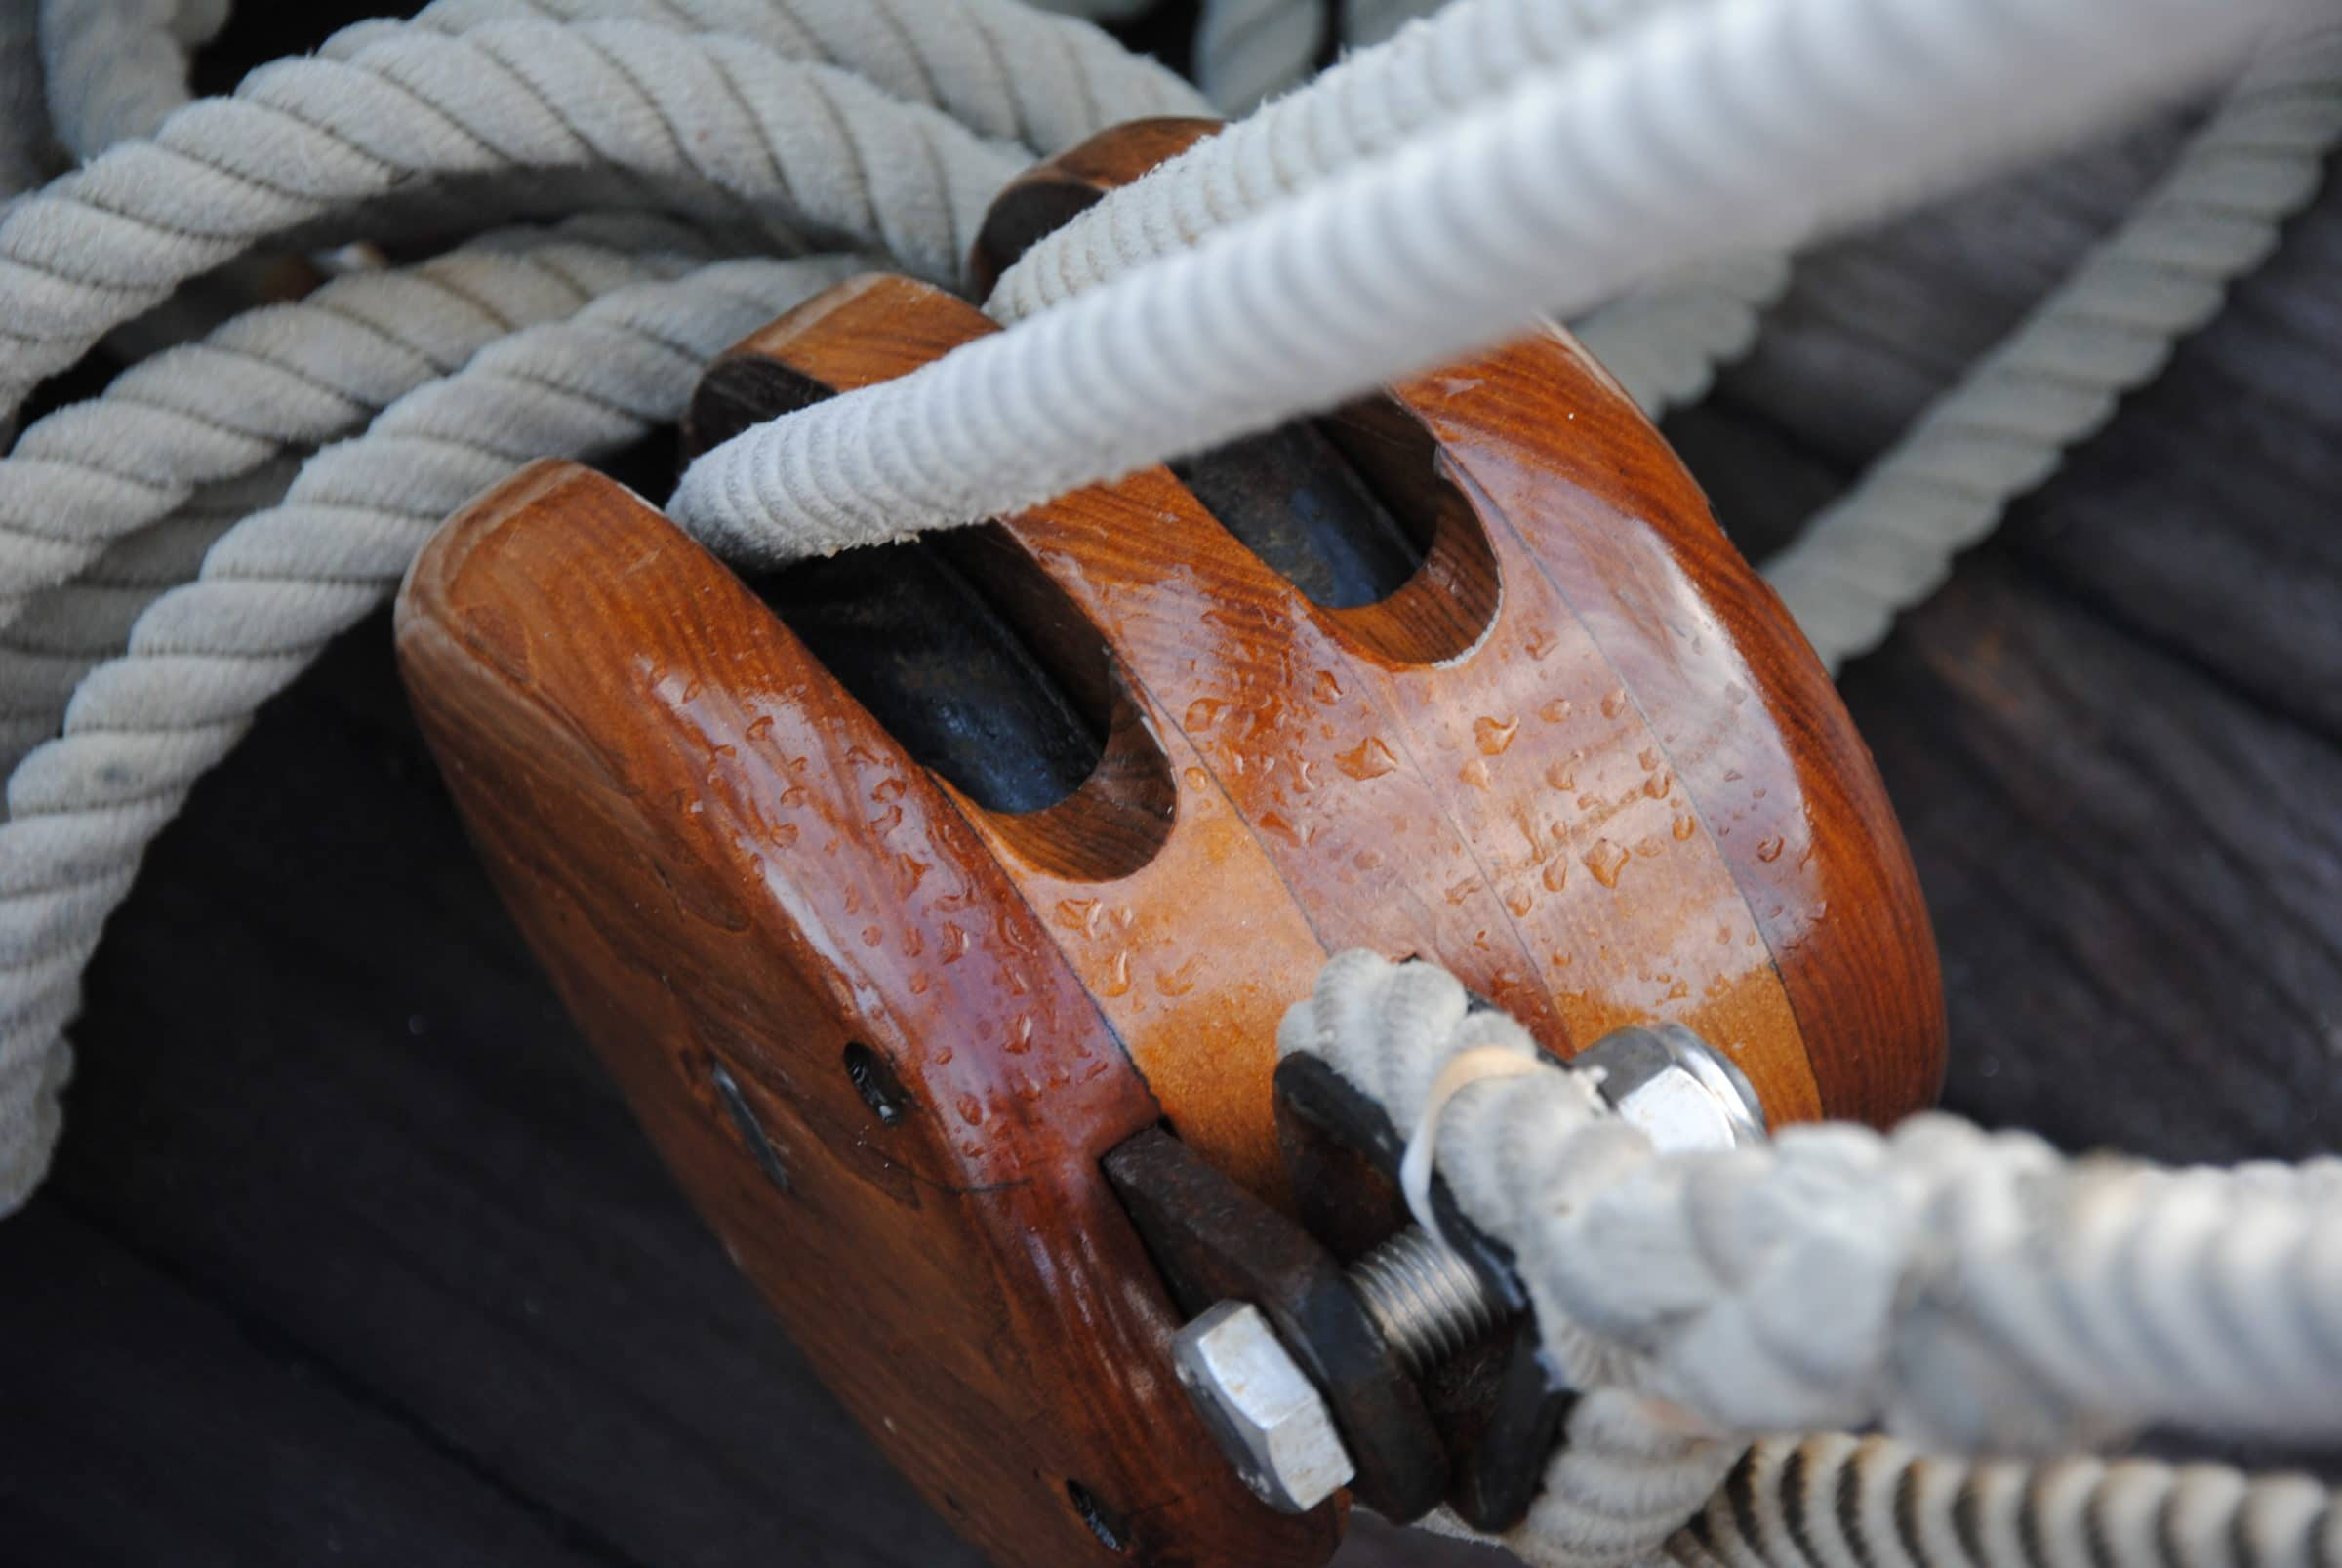 D2 applied to a boat pulley